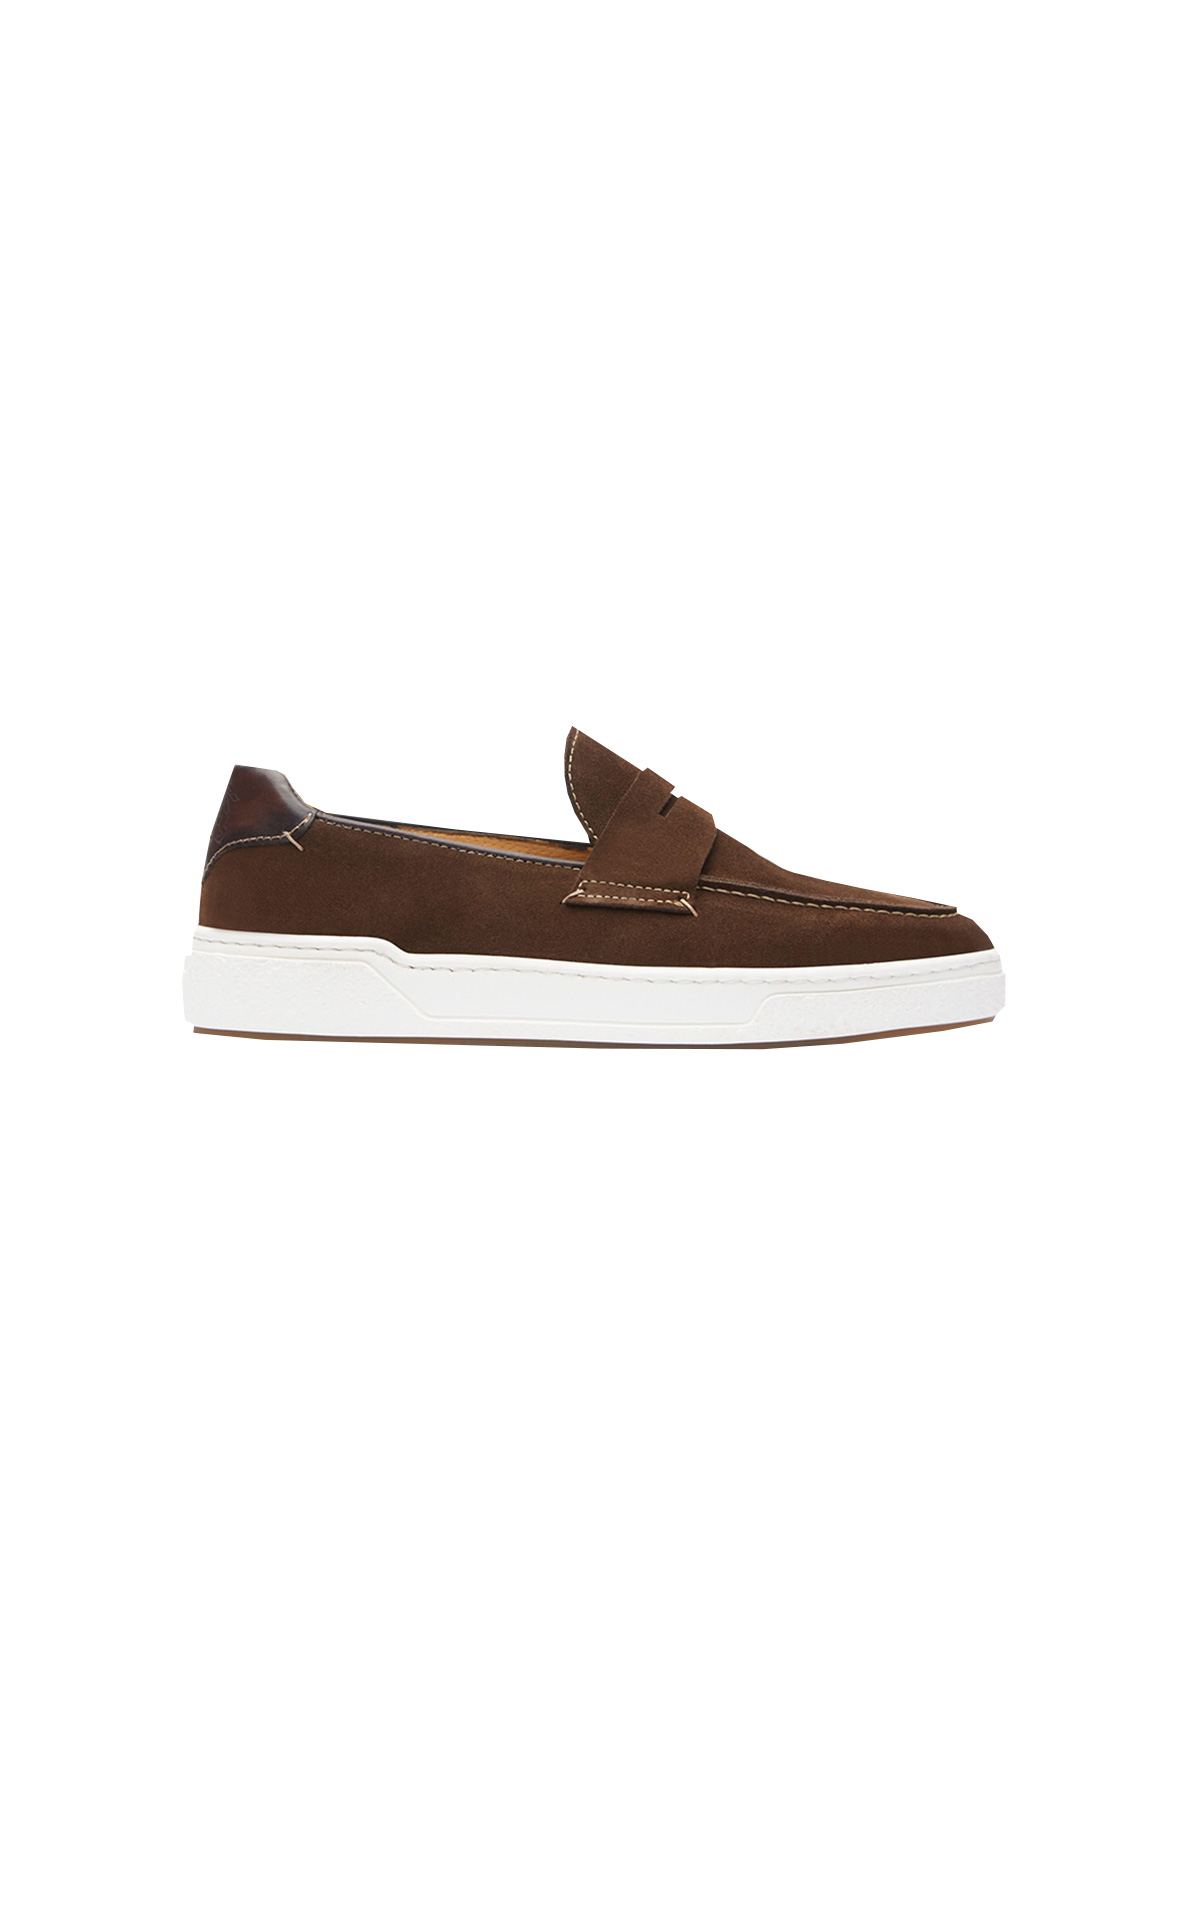 Brown moccasin Lottusse